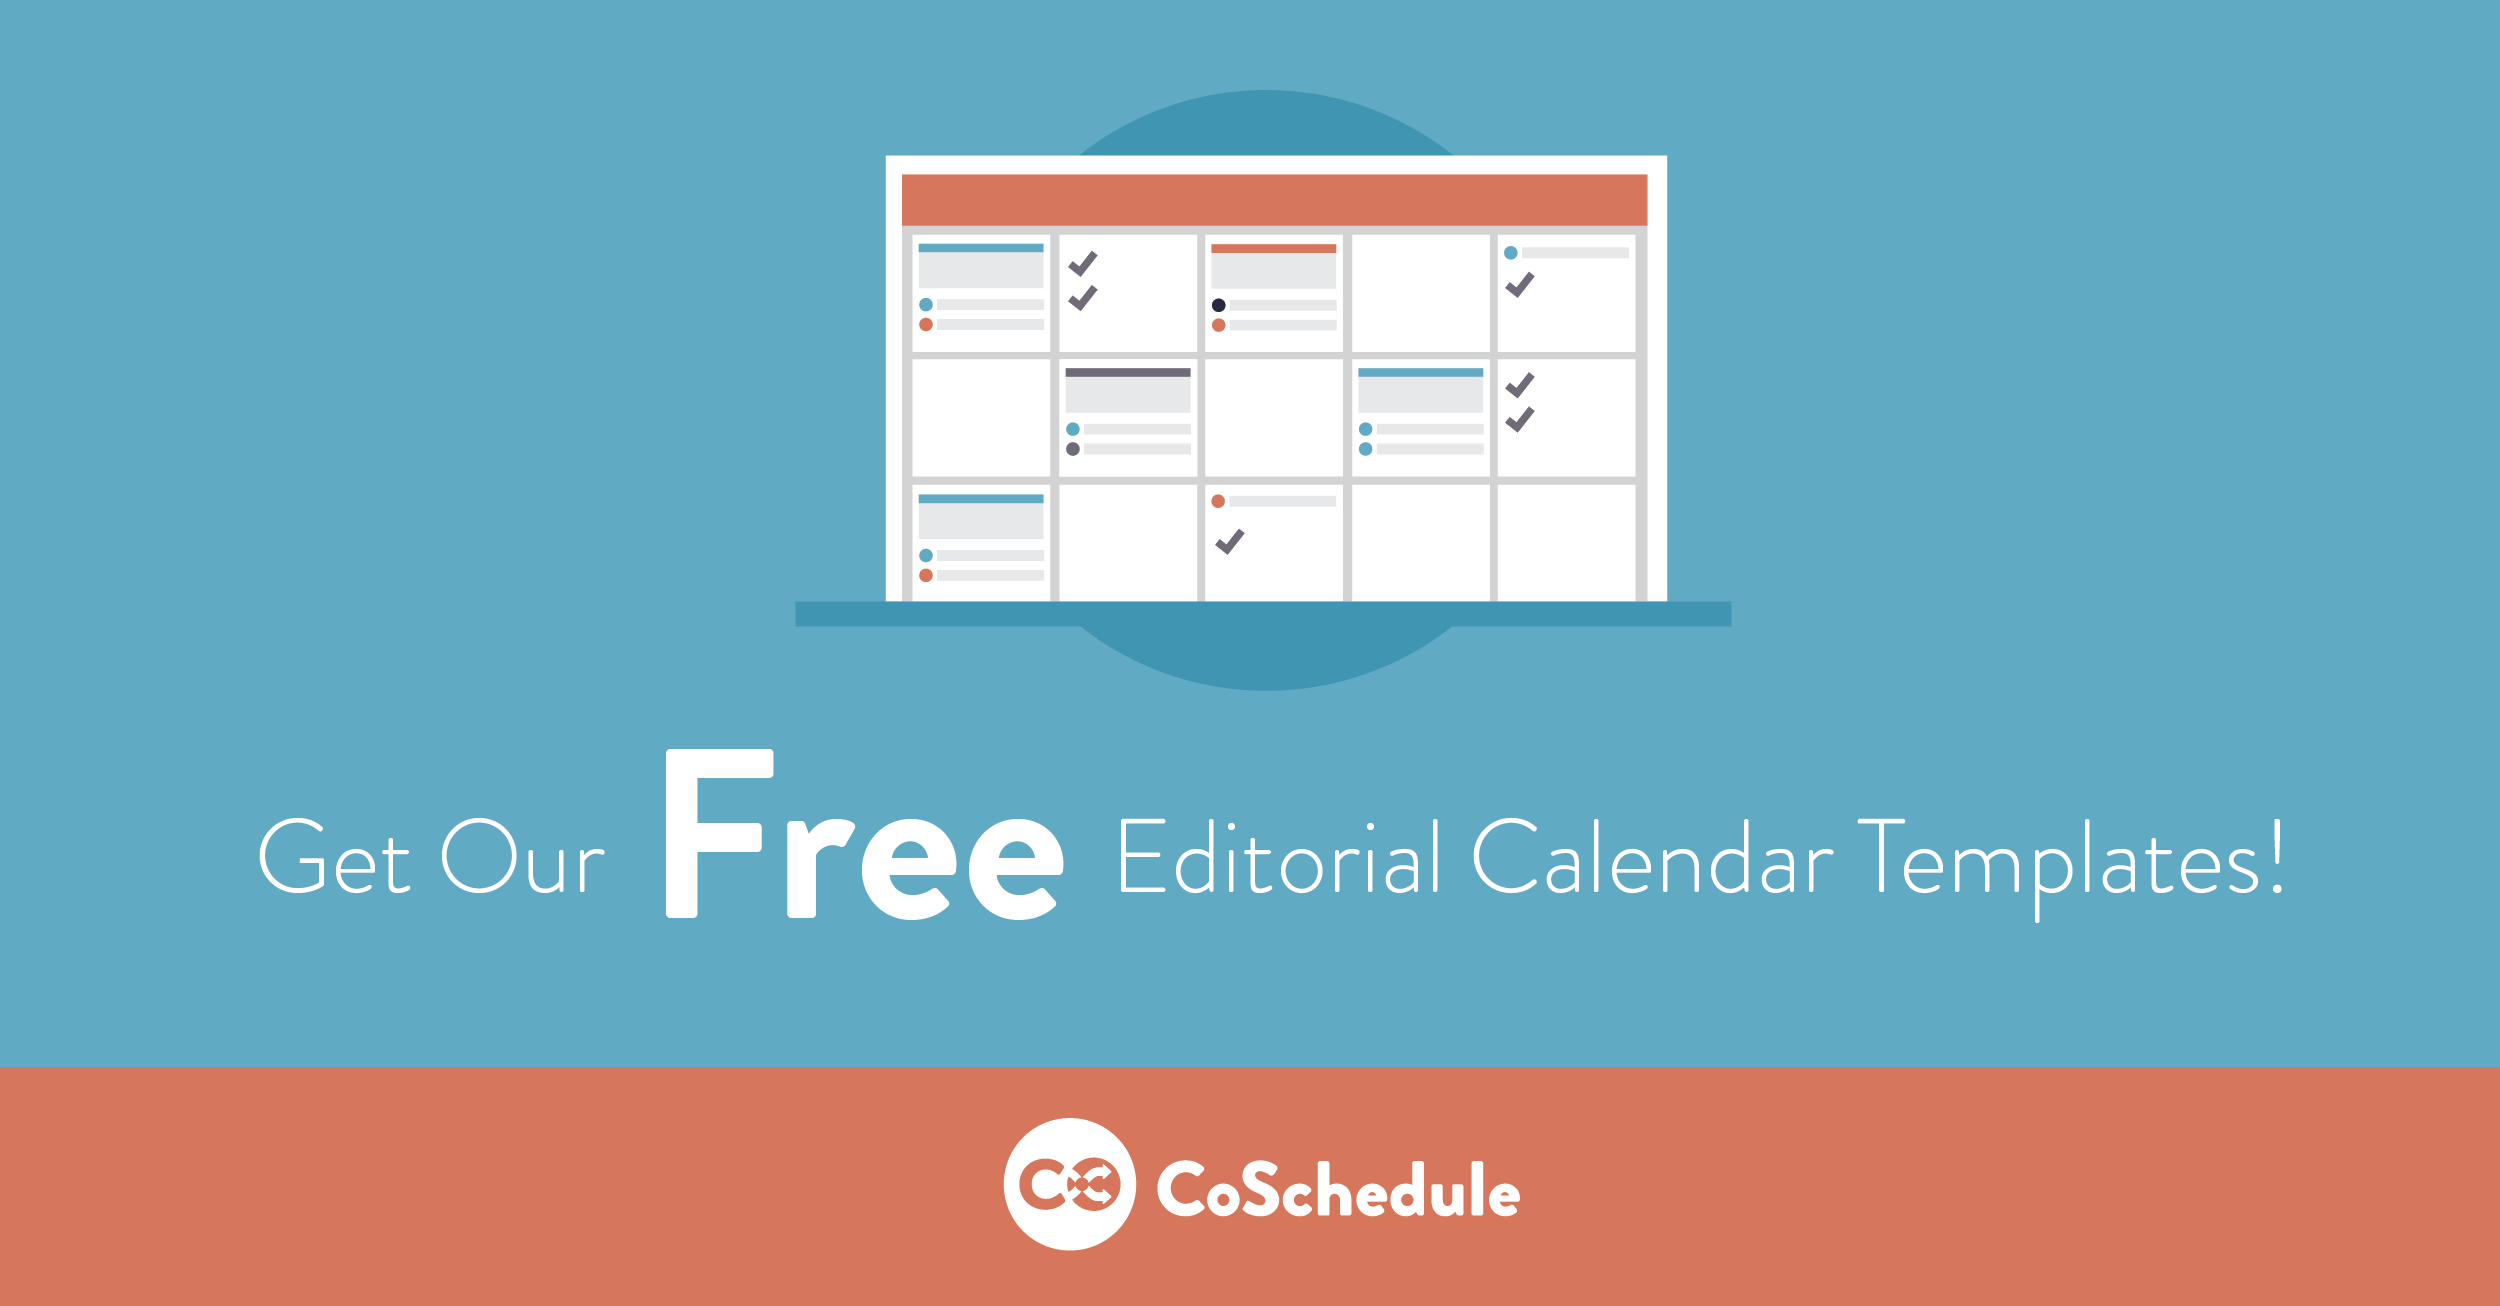 Get Our Free Editorial Calendar Templates Free Downloads